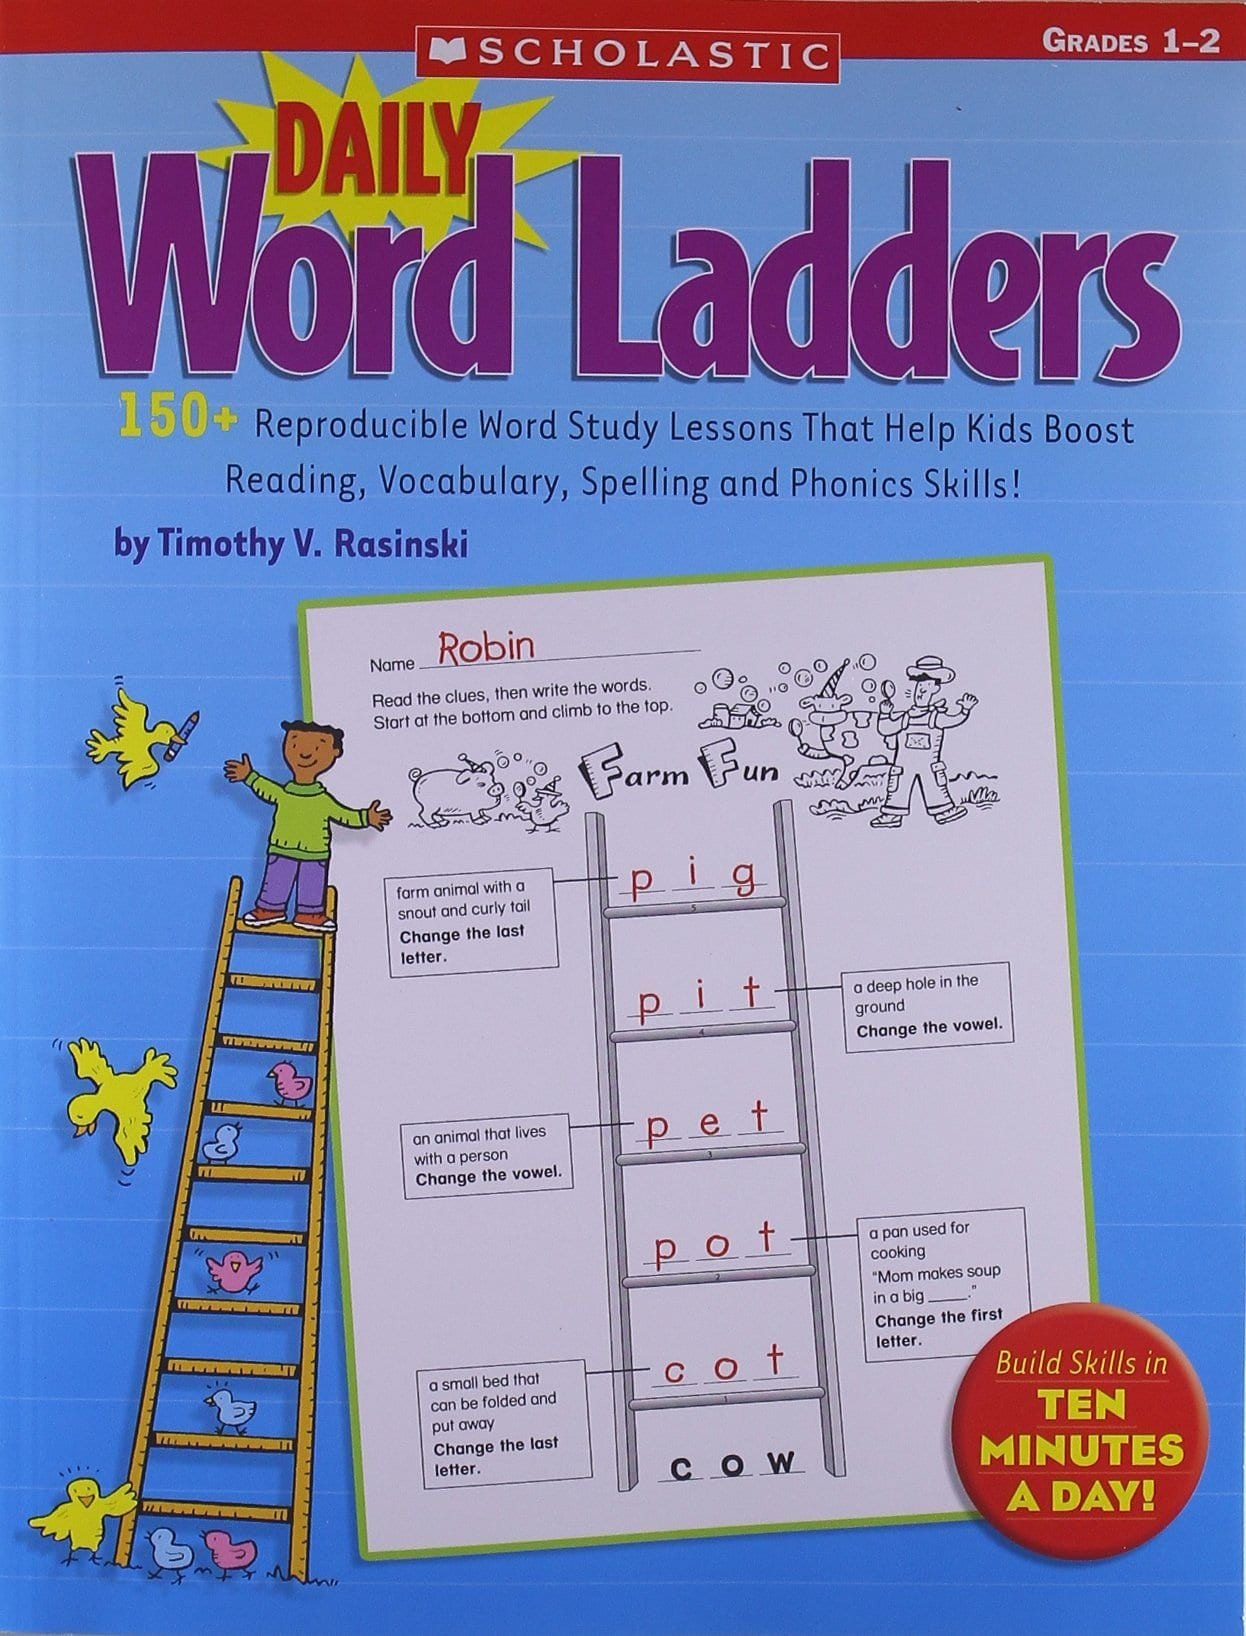 Word Ladder Worksheets For Middle School  Briefencounters Together With Word Ladder Worksheets For Middle School